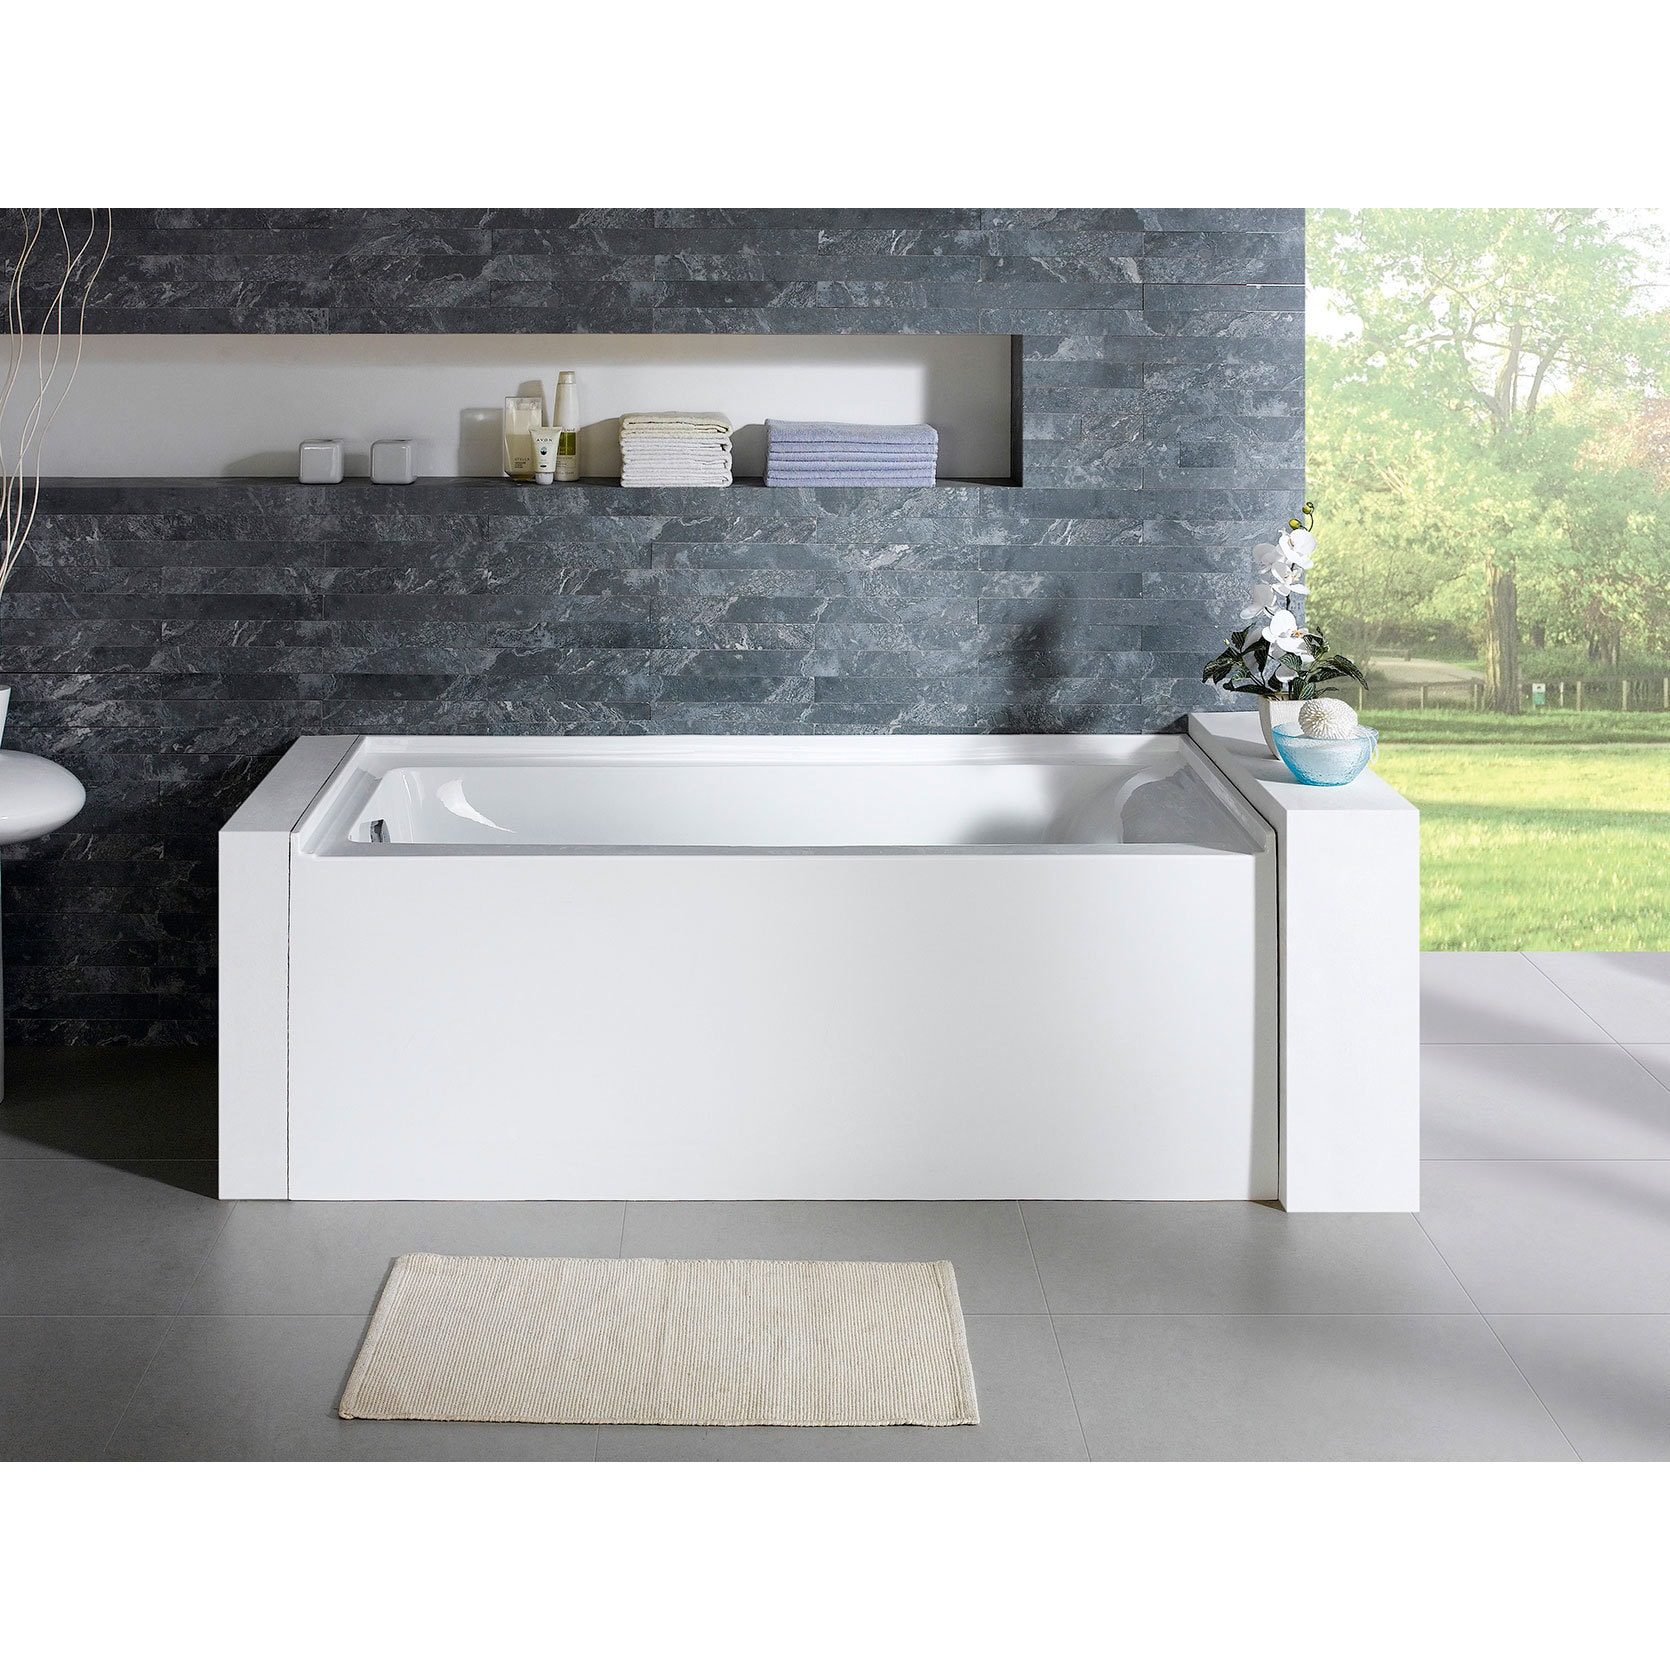 Pacific Collection Delano 59-inch x 32-inch White Rectang...